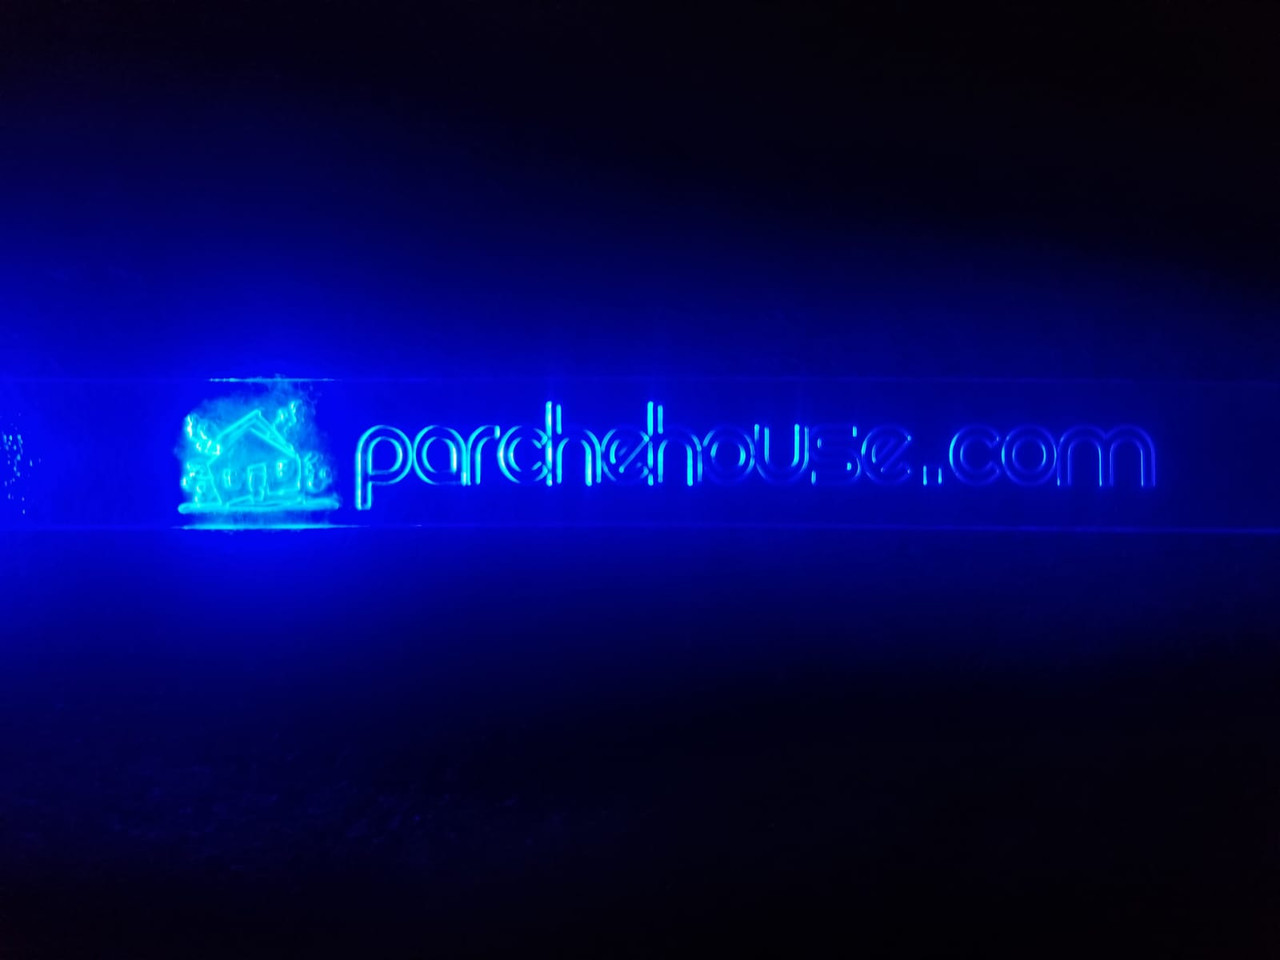 LED, Bracelet, Super bright, Glow, Glowing, Nightclub, Festival, Concert, RGB, Stadium, Arena, Rave, Branding, Activation, Sponsor